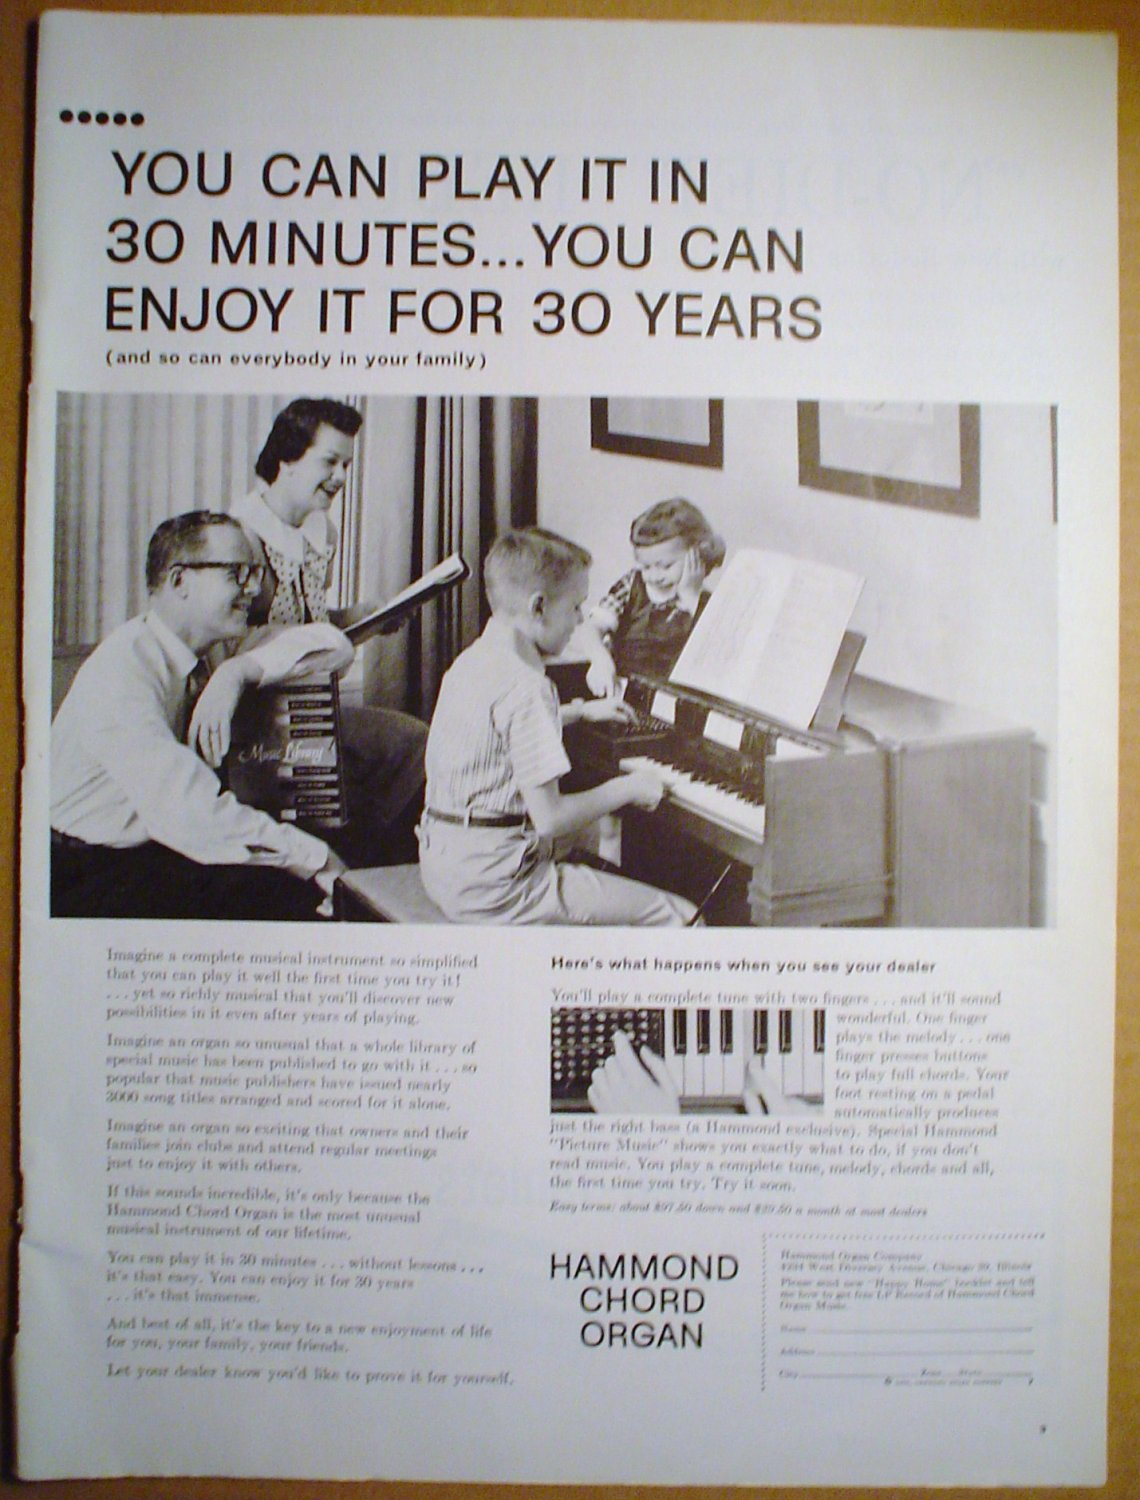 1958 FULL PAGE AD HAMMOND CHORD ORGAN YOU CAN PLAY IT IN 30 MINUTES + REGIMEN-TABLETS NO-DIET